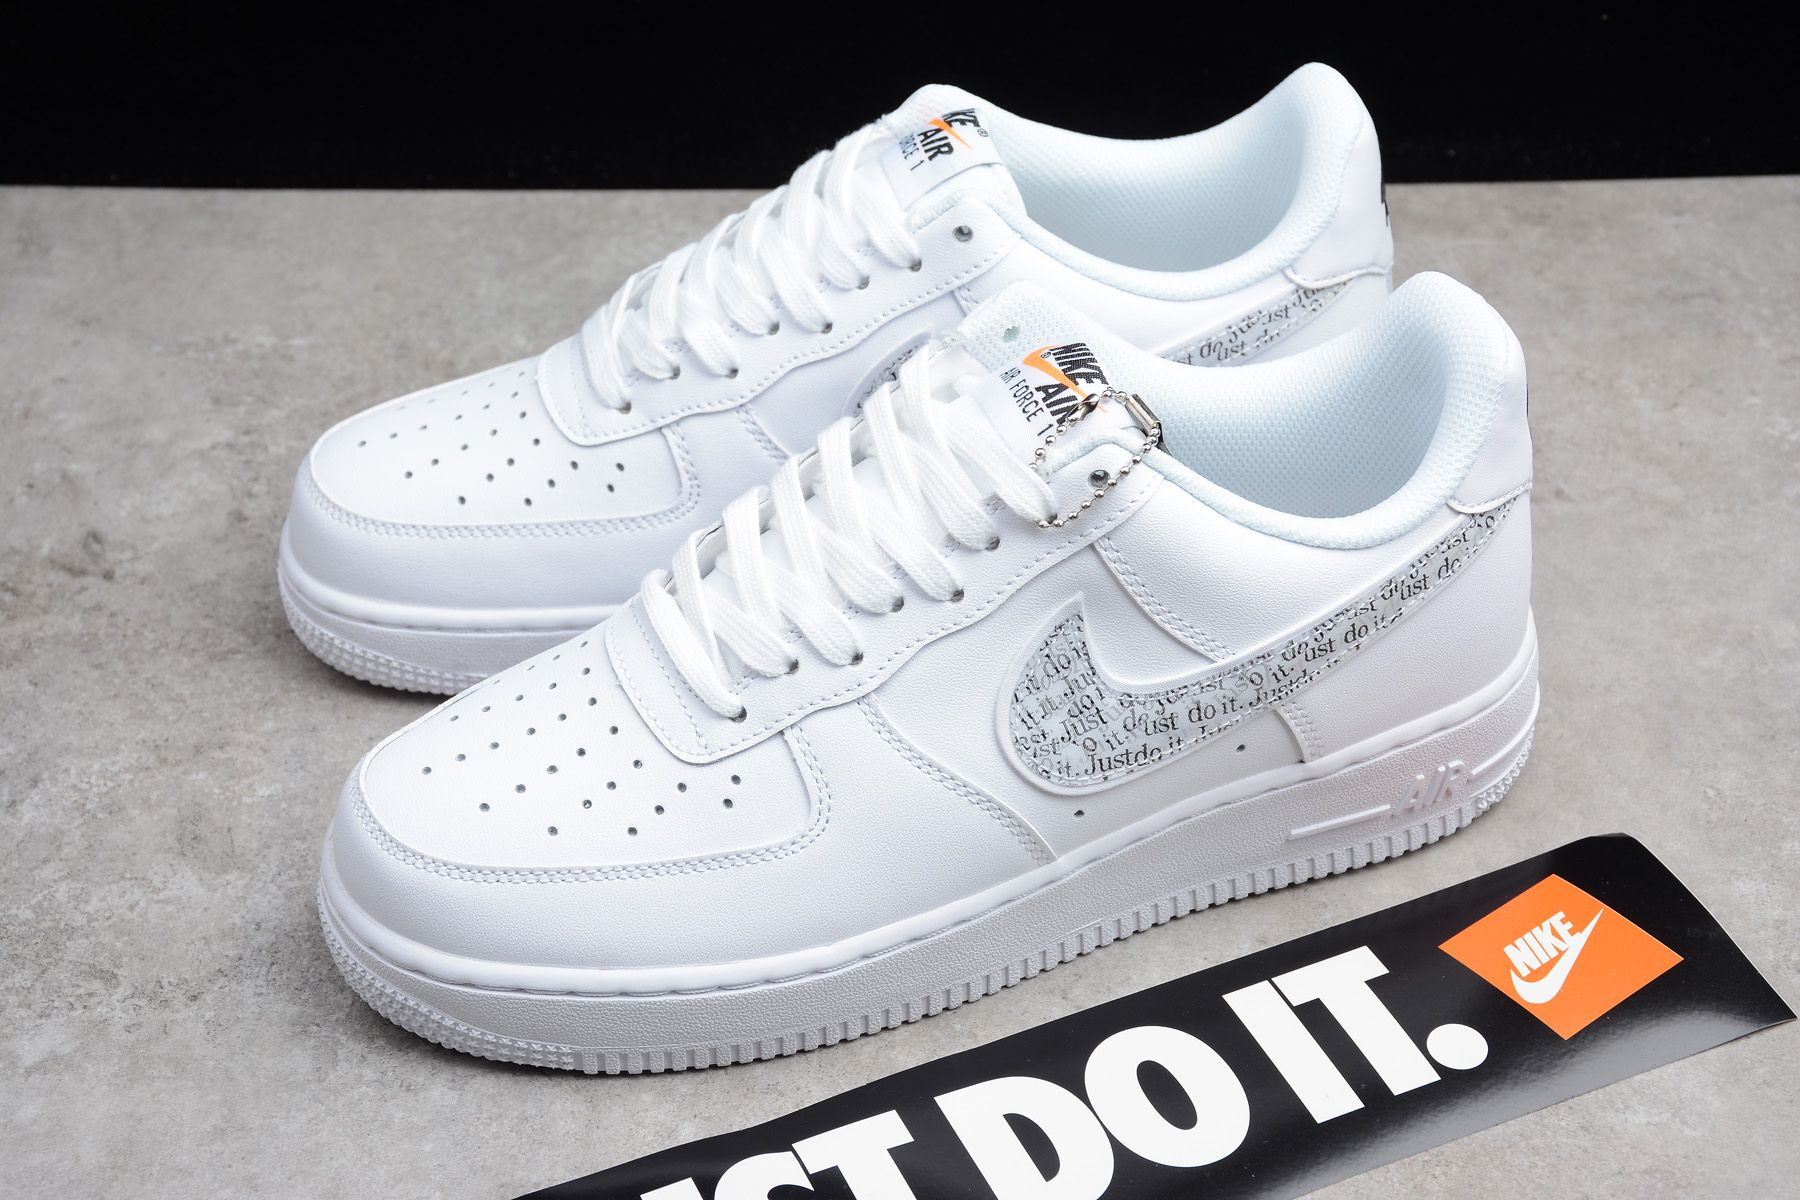 Nike Air Force 1 Lv8 Just Do It White Black Total Orange Bq5361